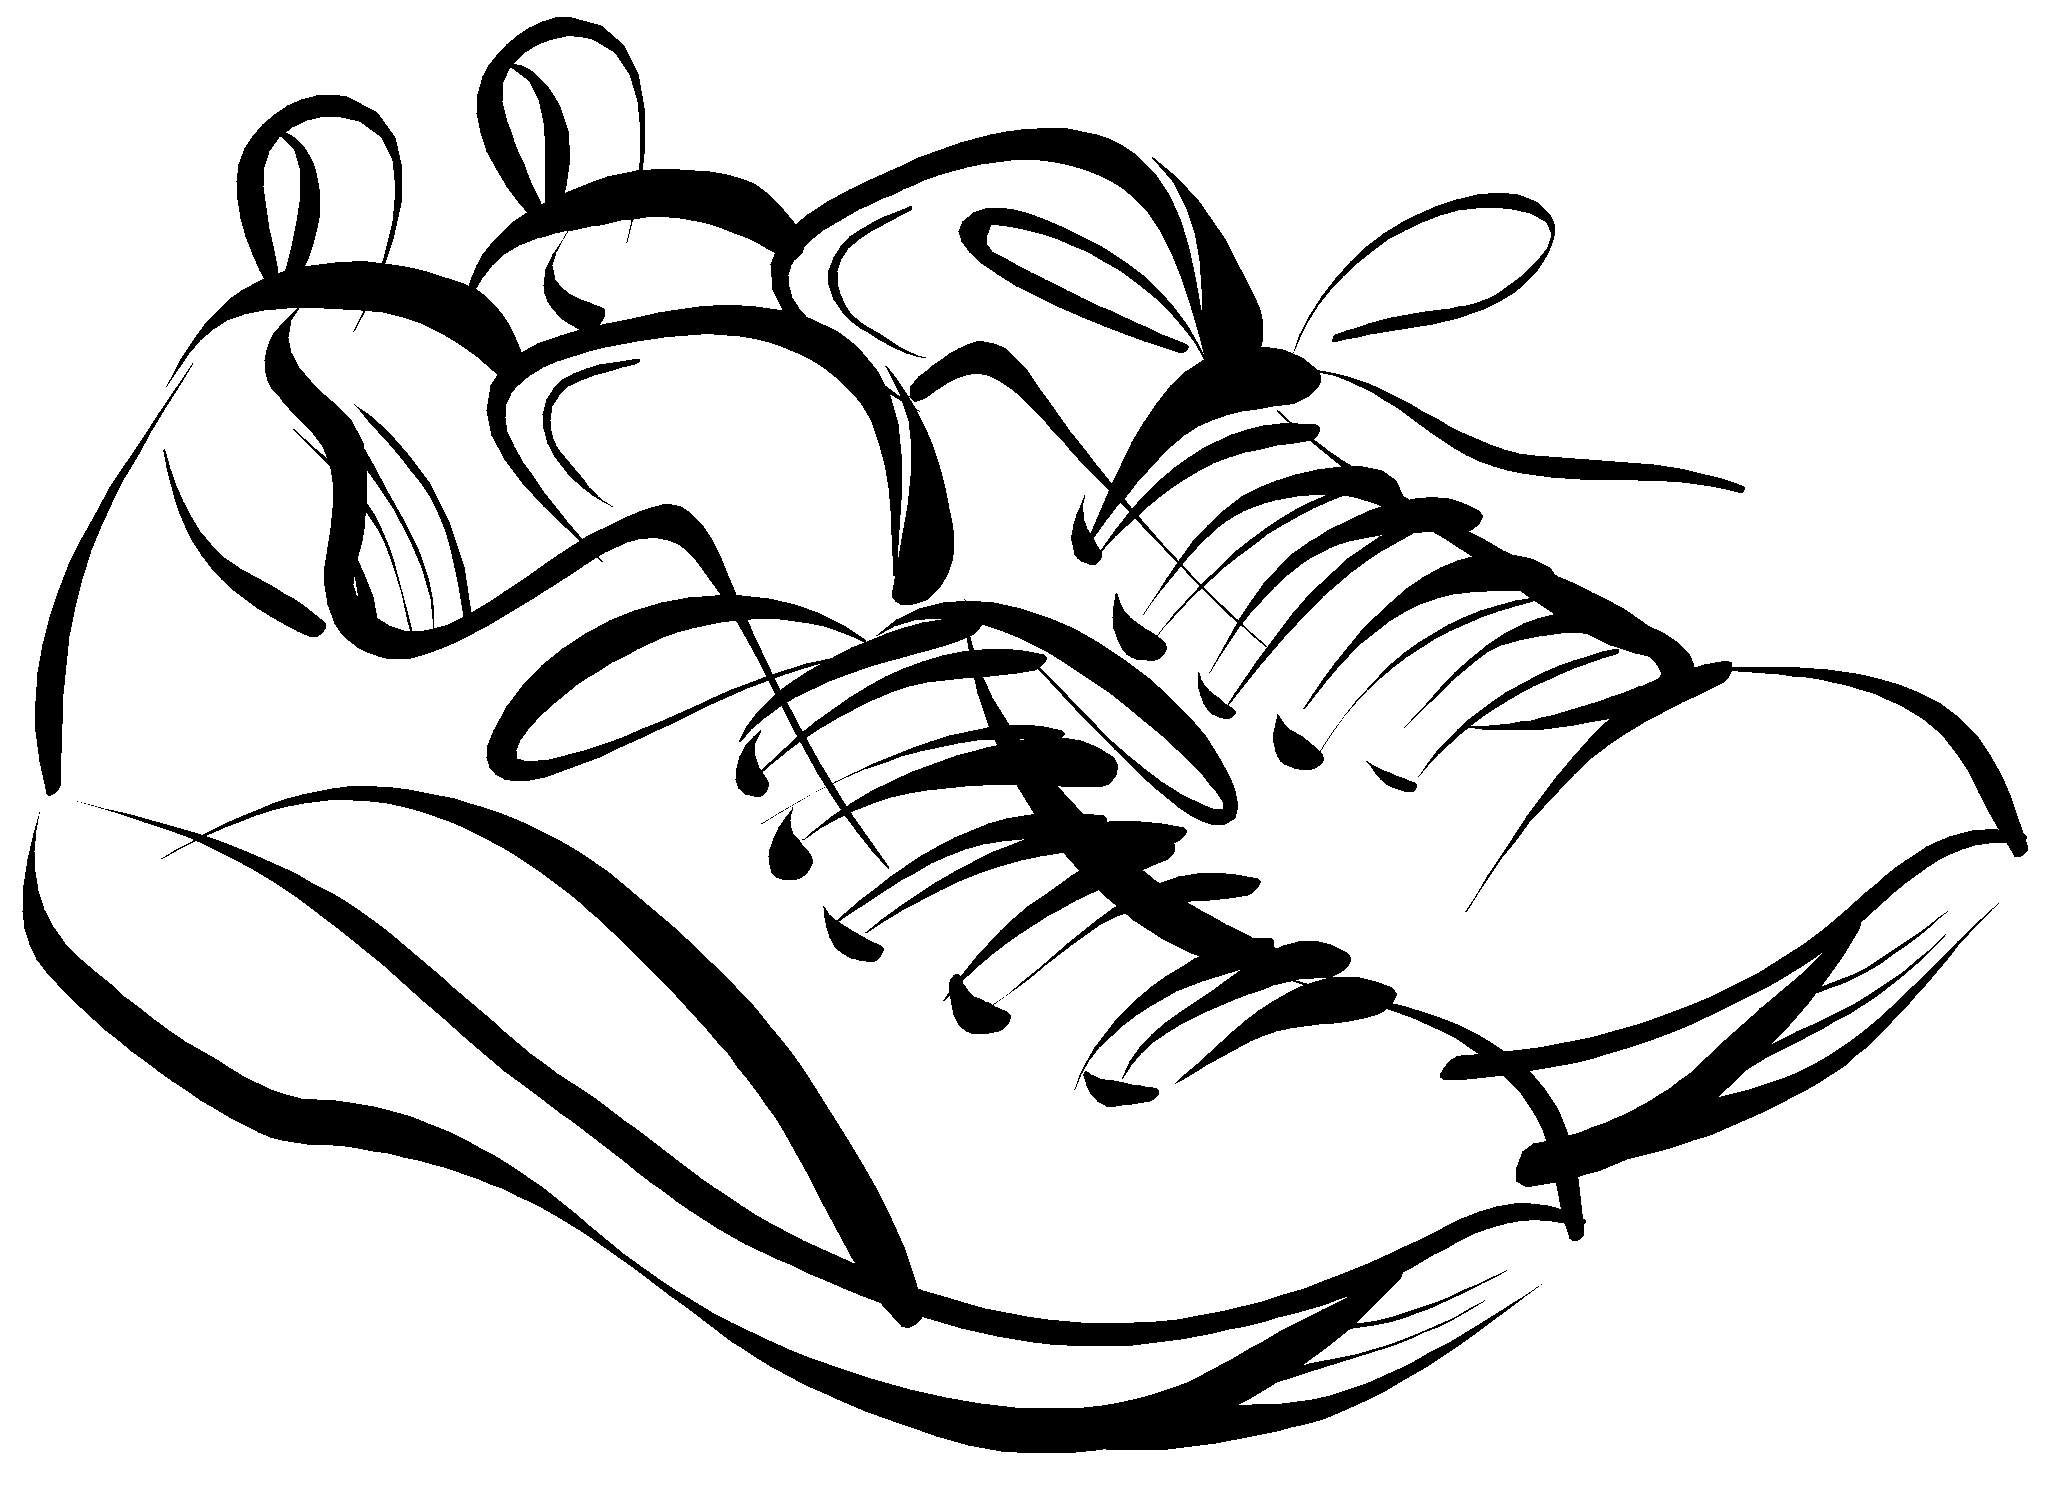 pin Drawn sneakers black and white #1 - PNG Shoes Black And White